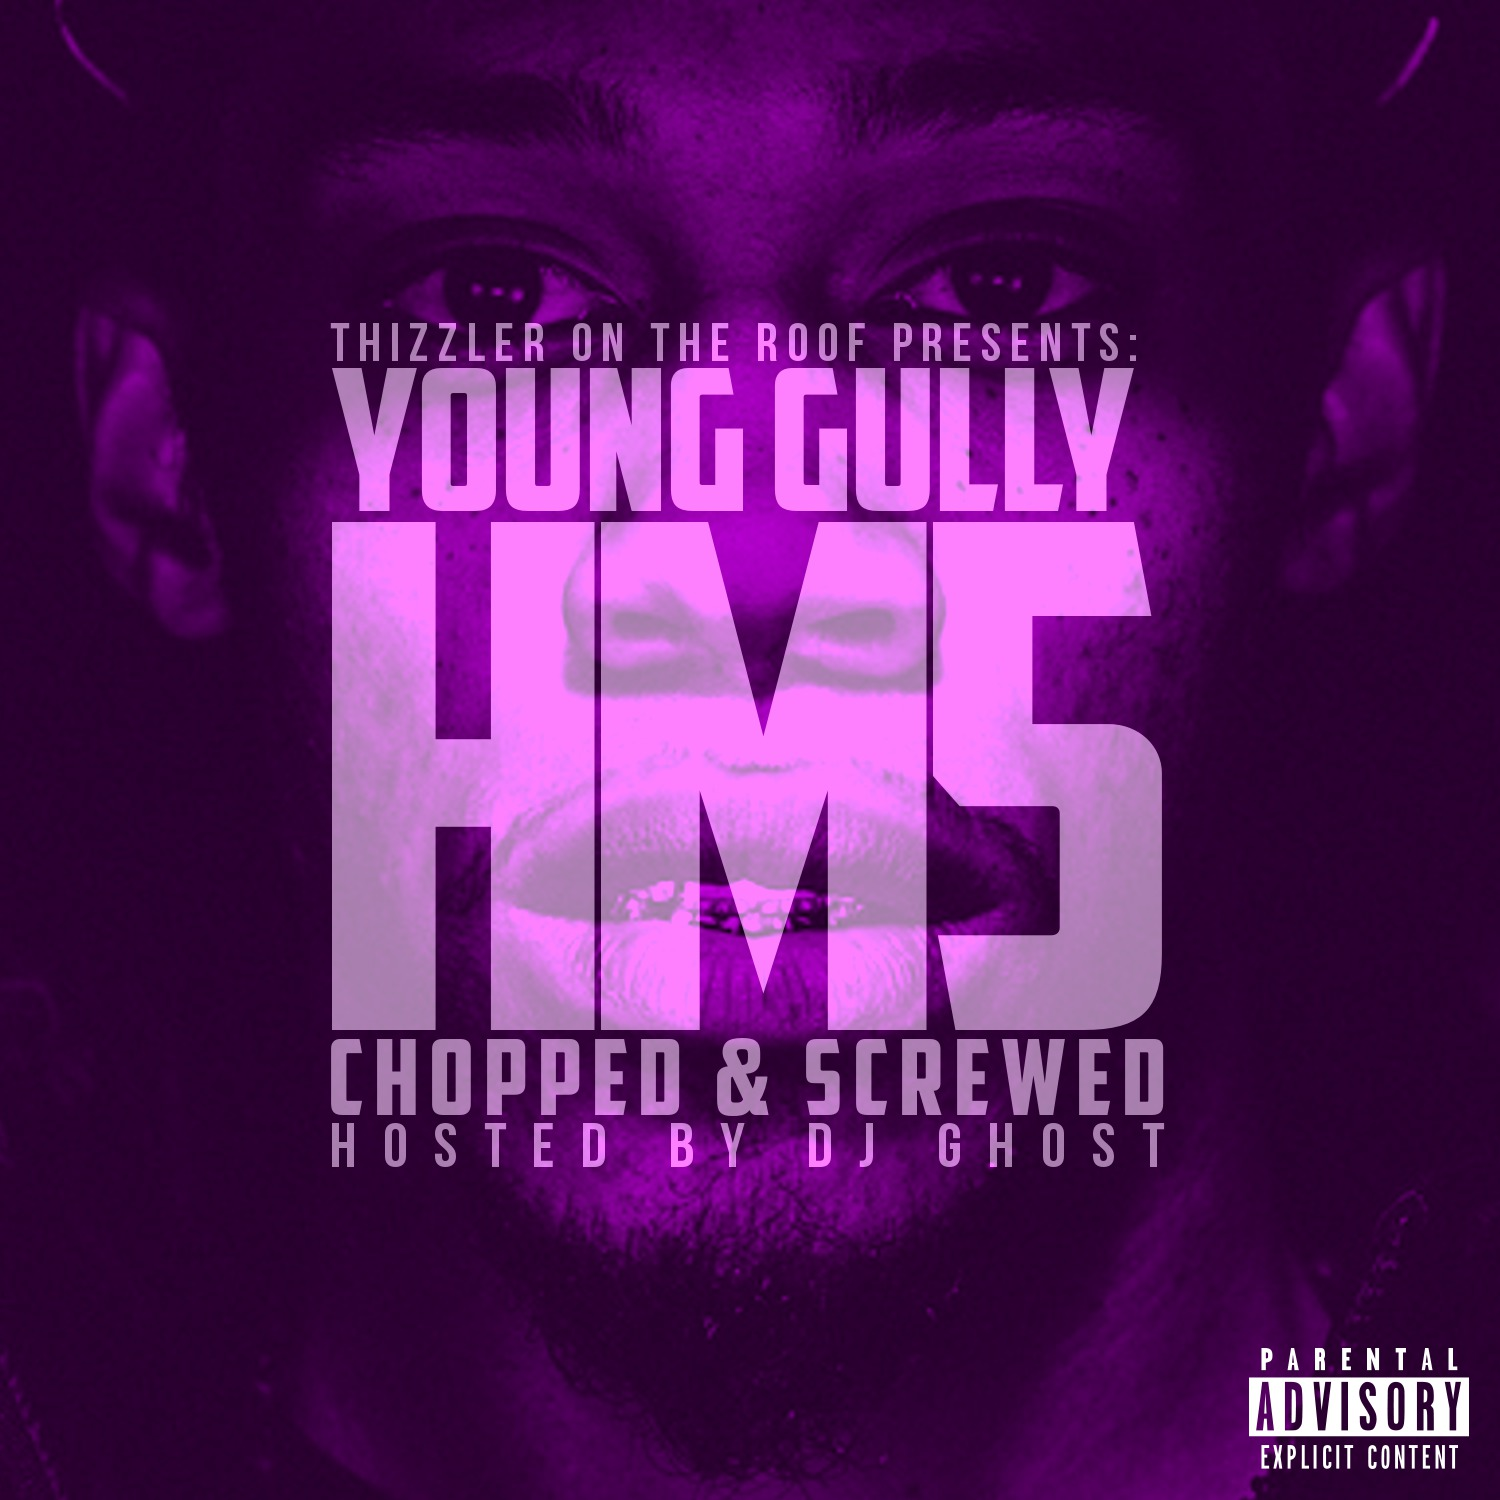 Young Gully - Lies (Chopped x Screwed by DJ Ghost) [Thizzler.com Exclusive]